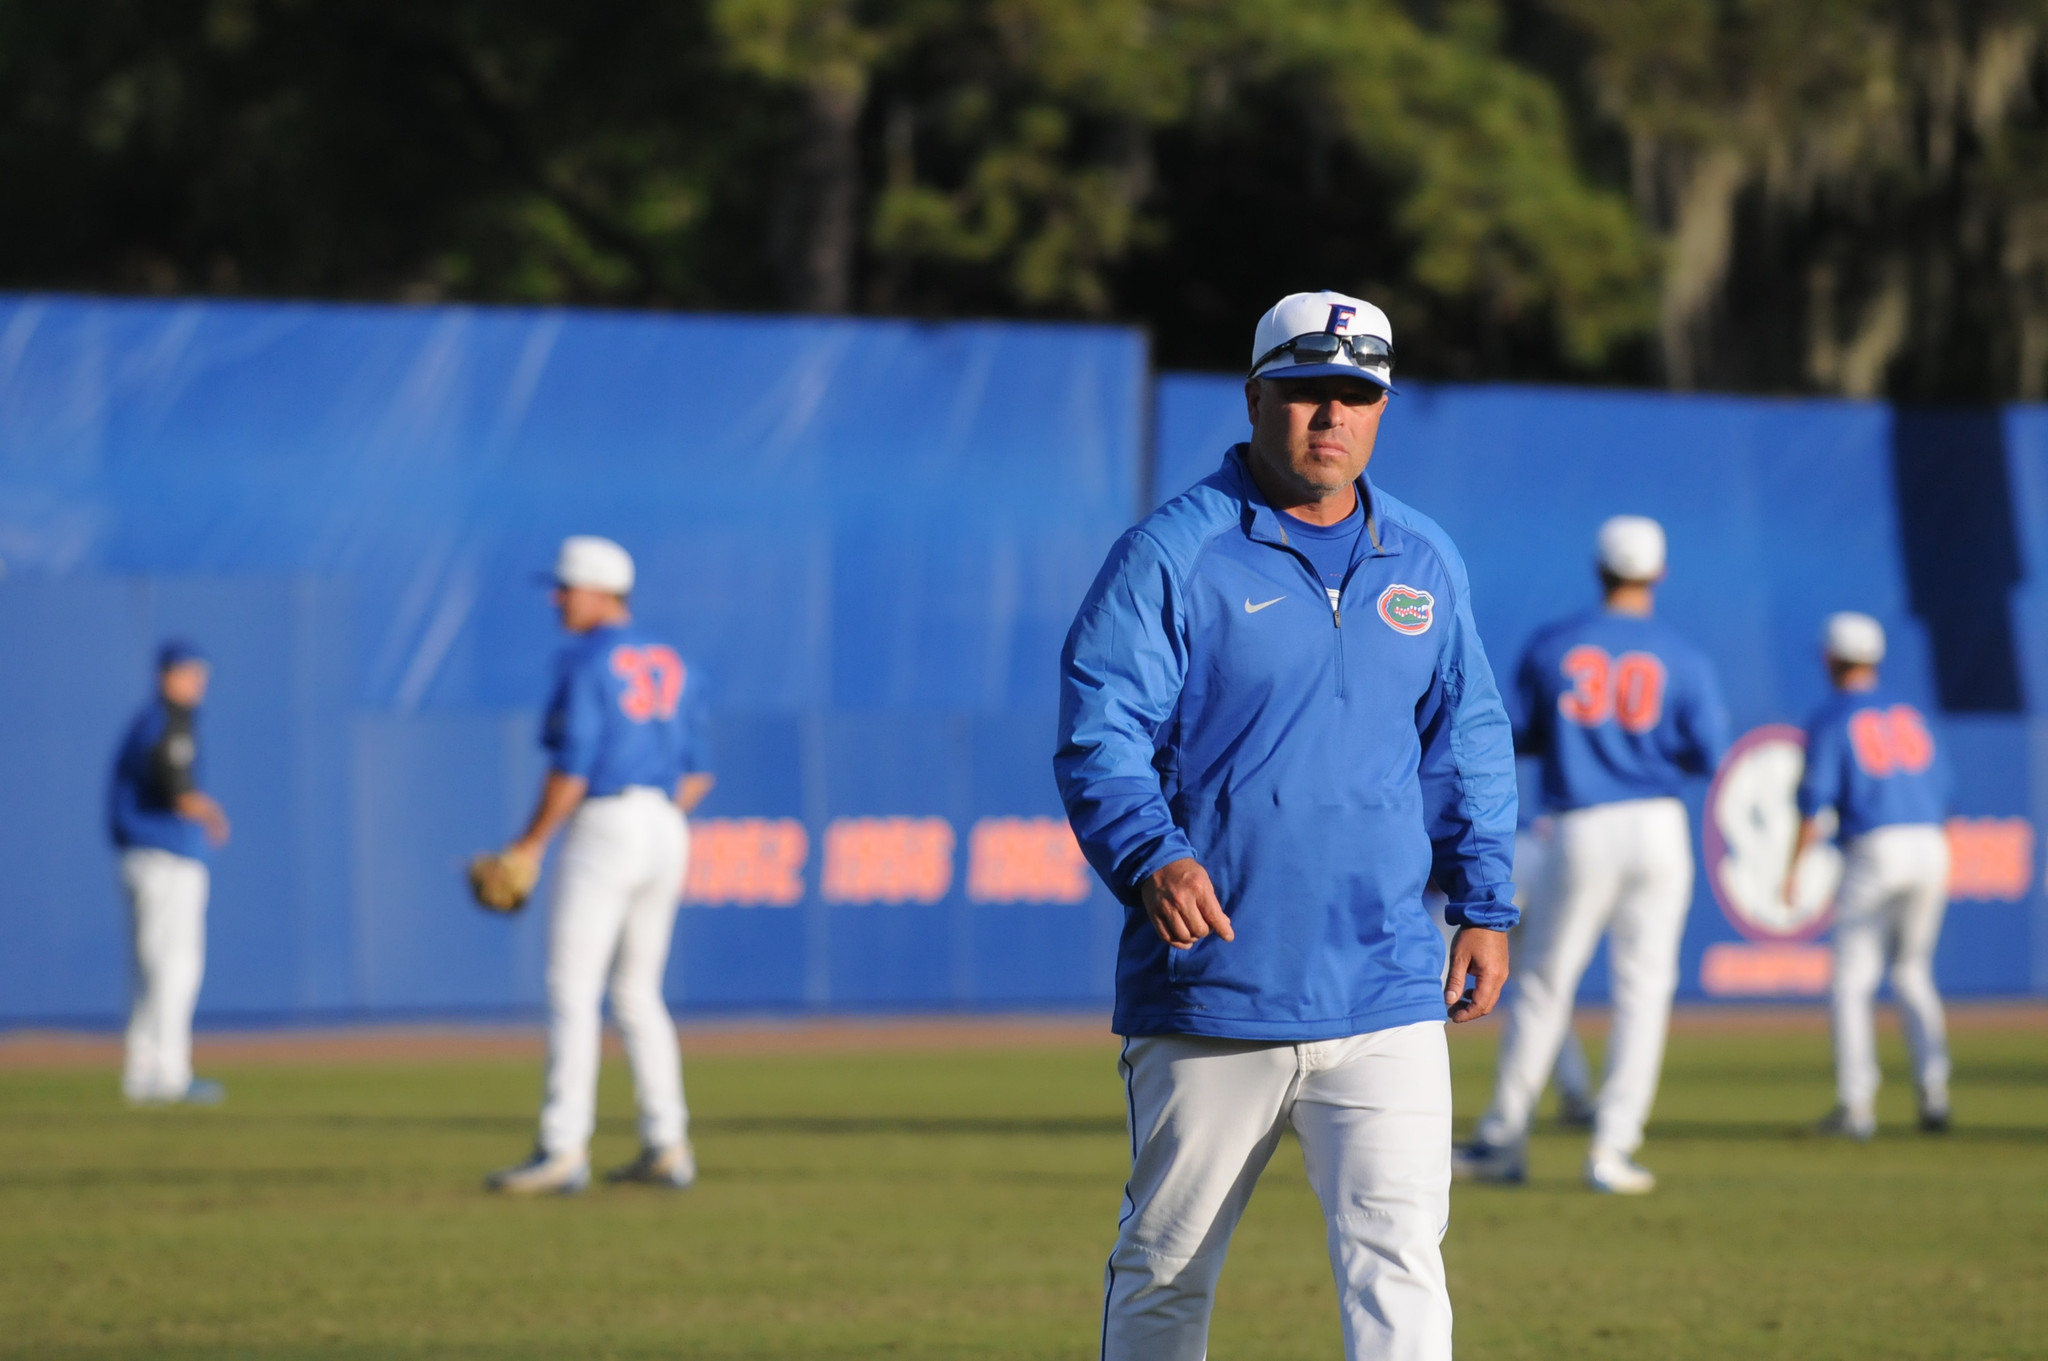 Os-uf-baseball-kevin-o-sullivan-10-year-12-5-million-deal-20160928